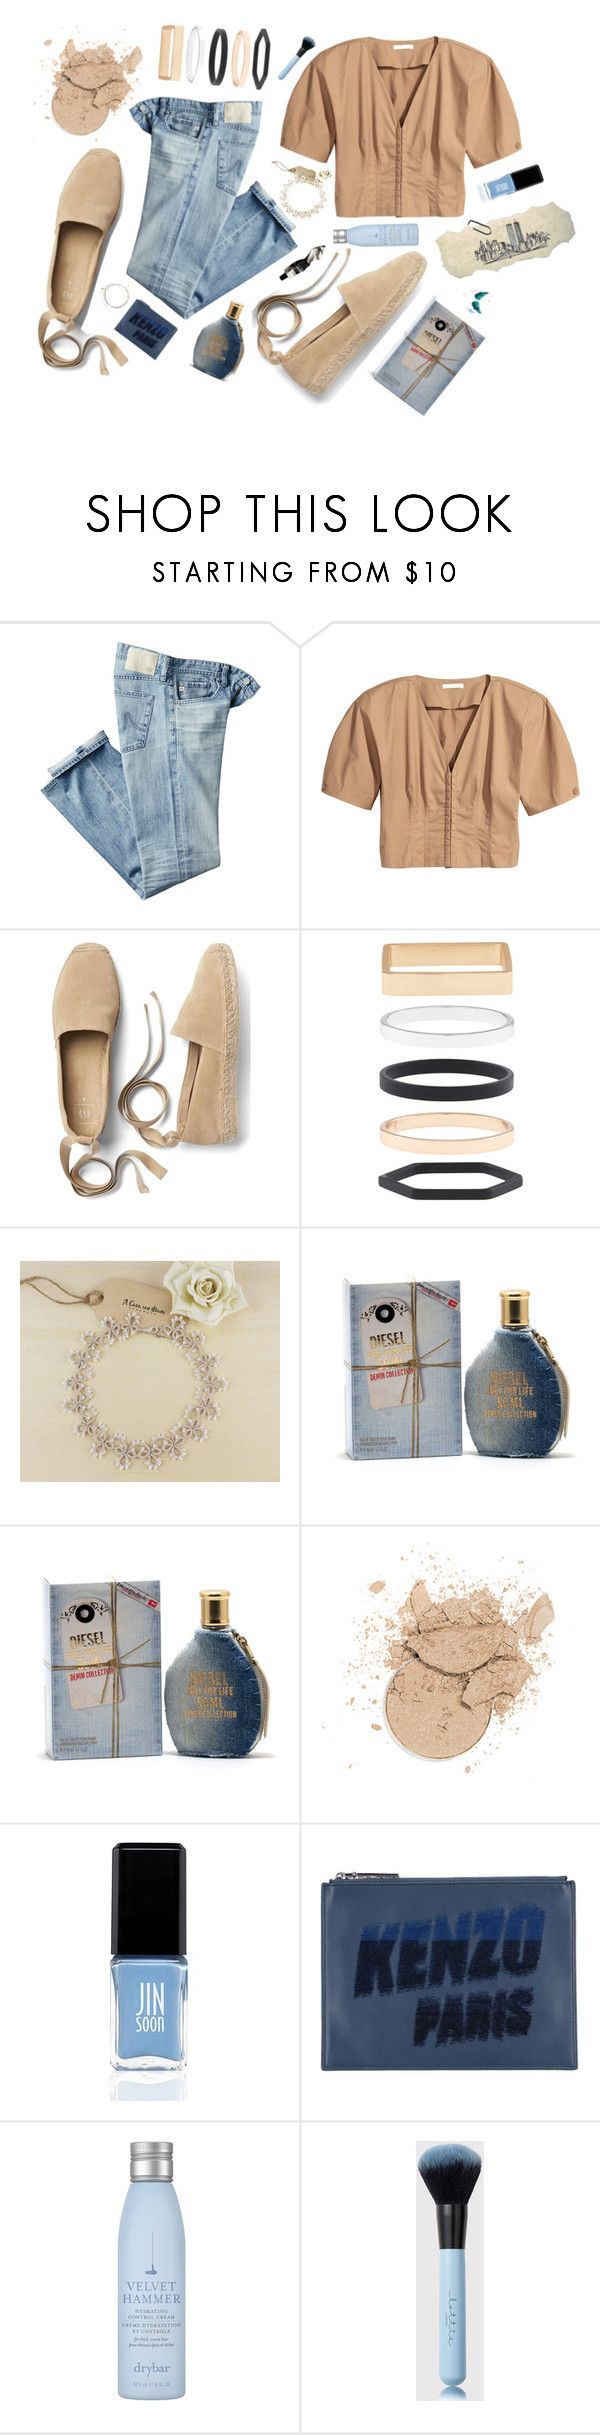 """""""city girl 🌆"""" by itsdebraxo ❤ liked on Polyvore featuring AG Adriano Goldschmied, Gap, Accessorize, Diesel, JINsoon, Kenzo, Drybar and Aesop"""